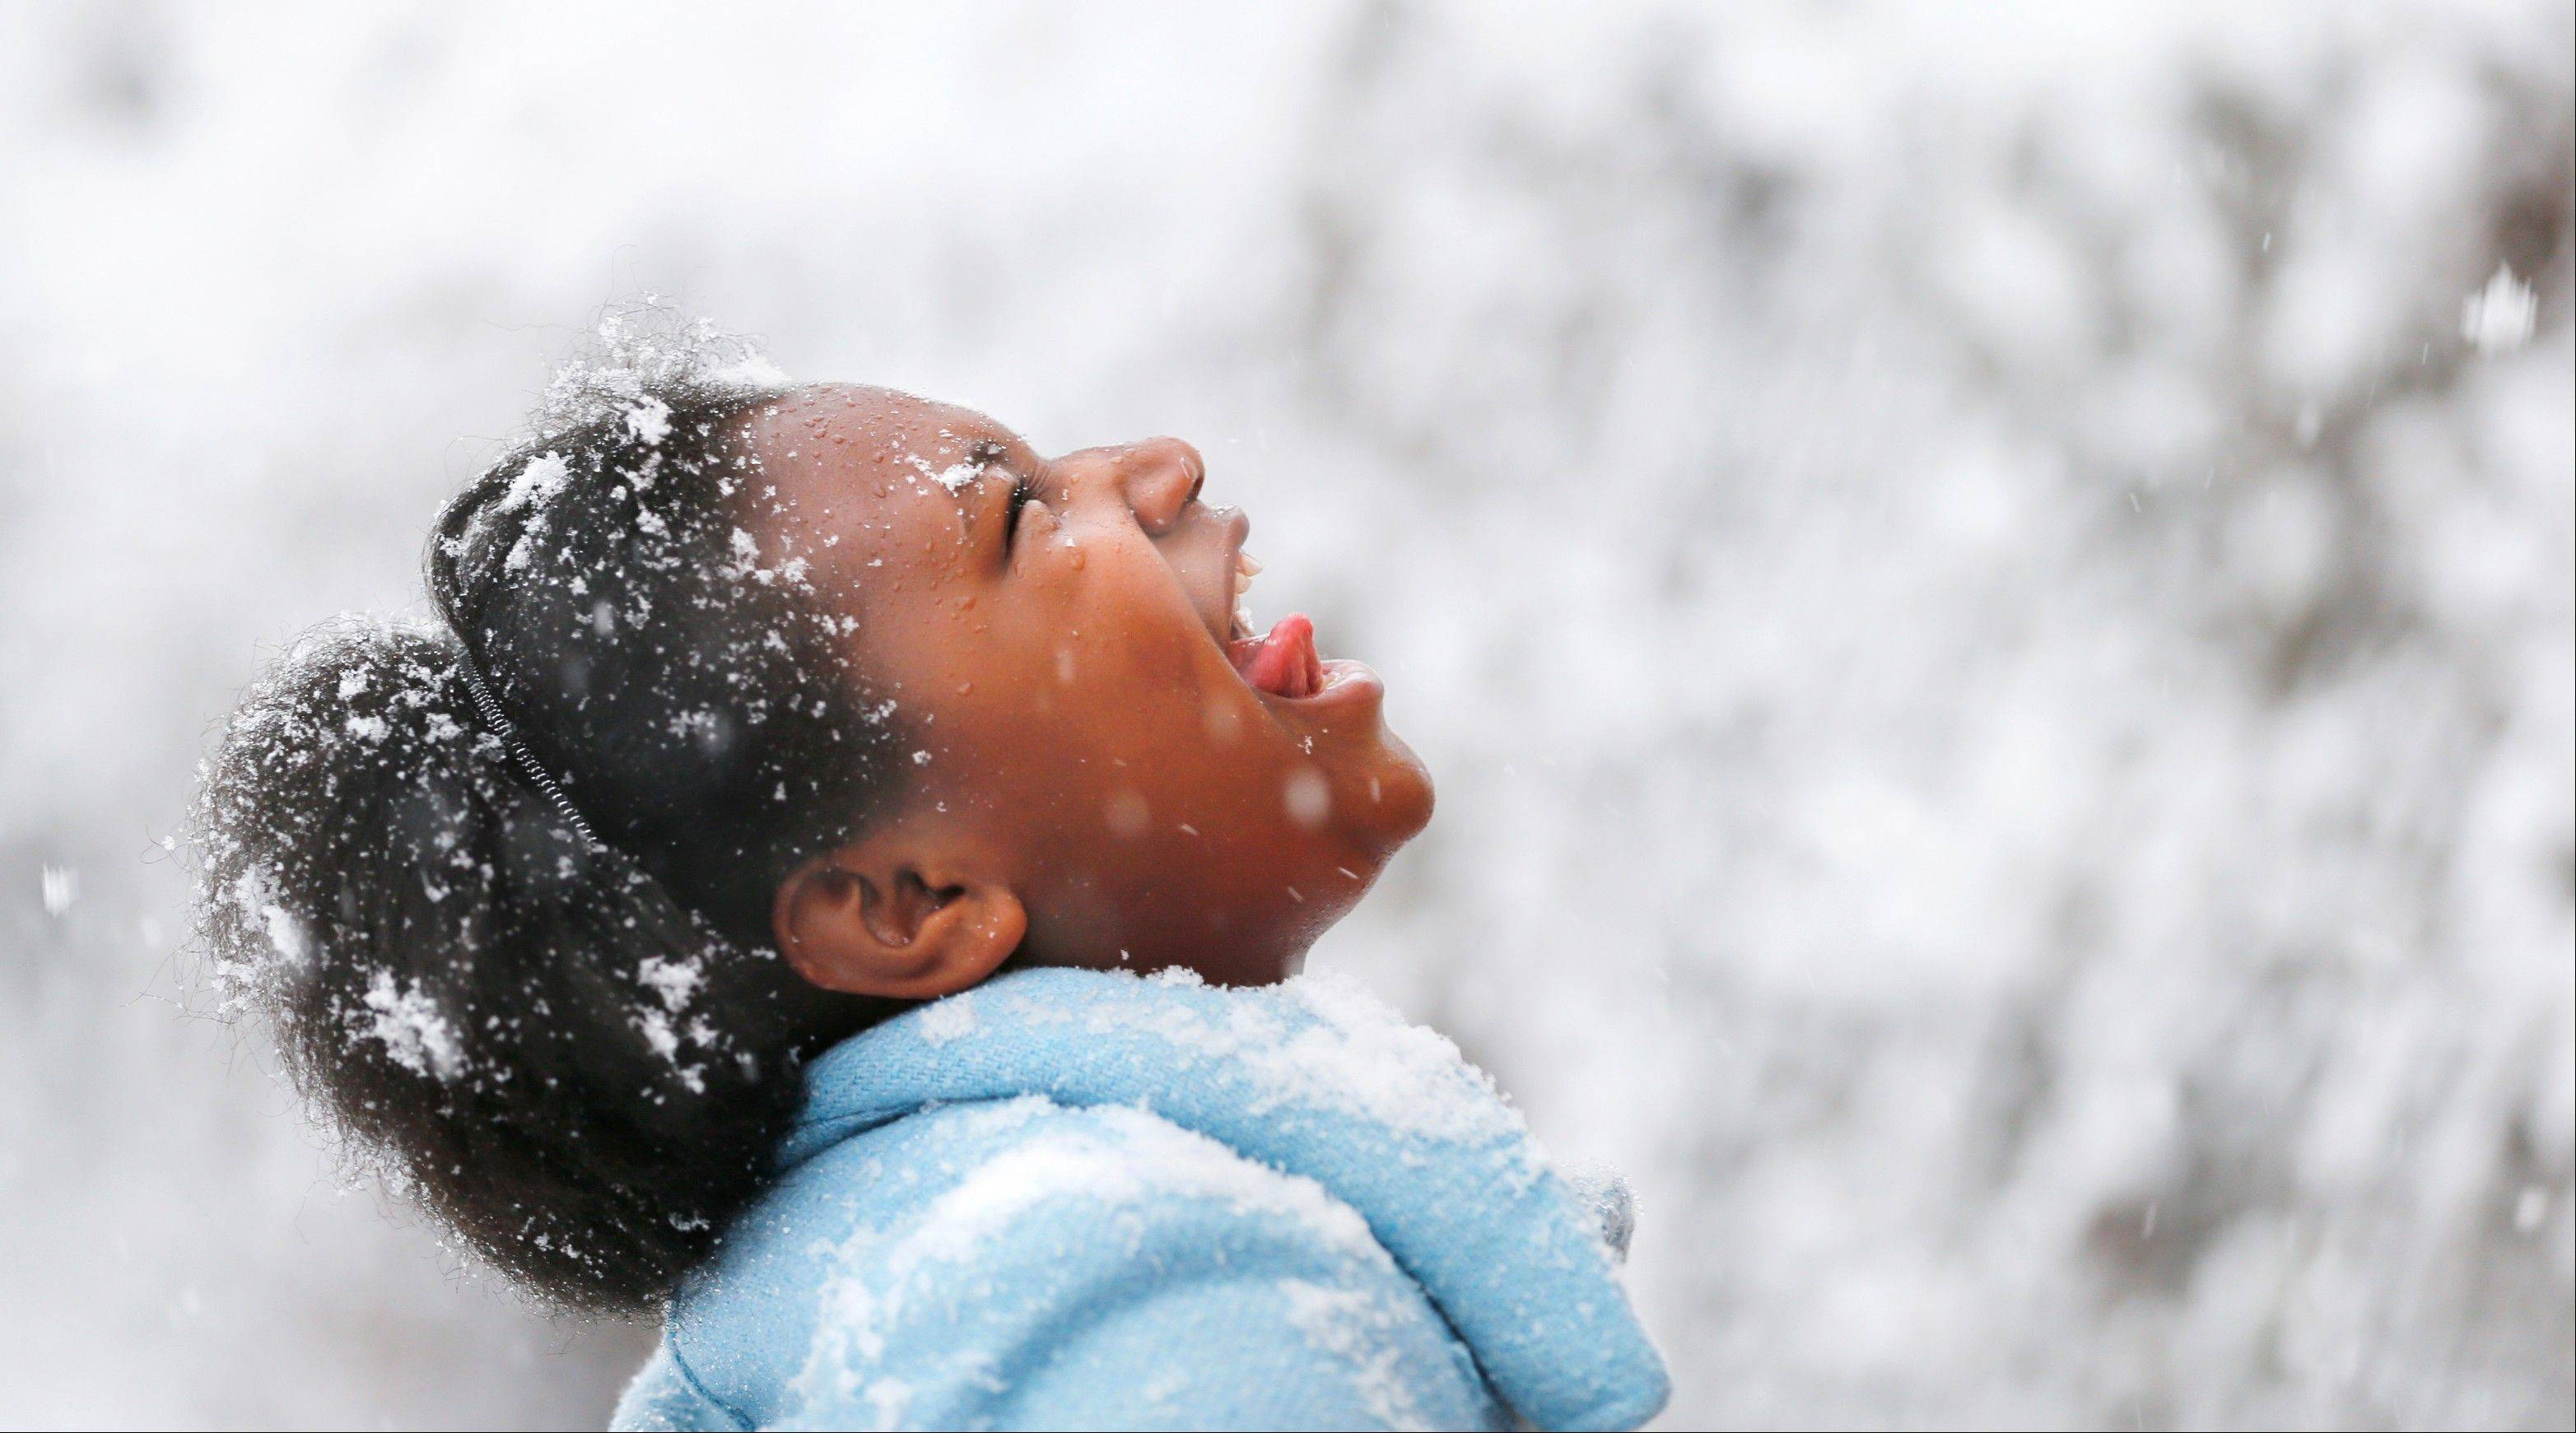 Destiny Chew, age 11, tries to catch snowflakes on her tongue as she stands along Q Street in Richmond, Va. Sunday, March 24, 2013.